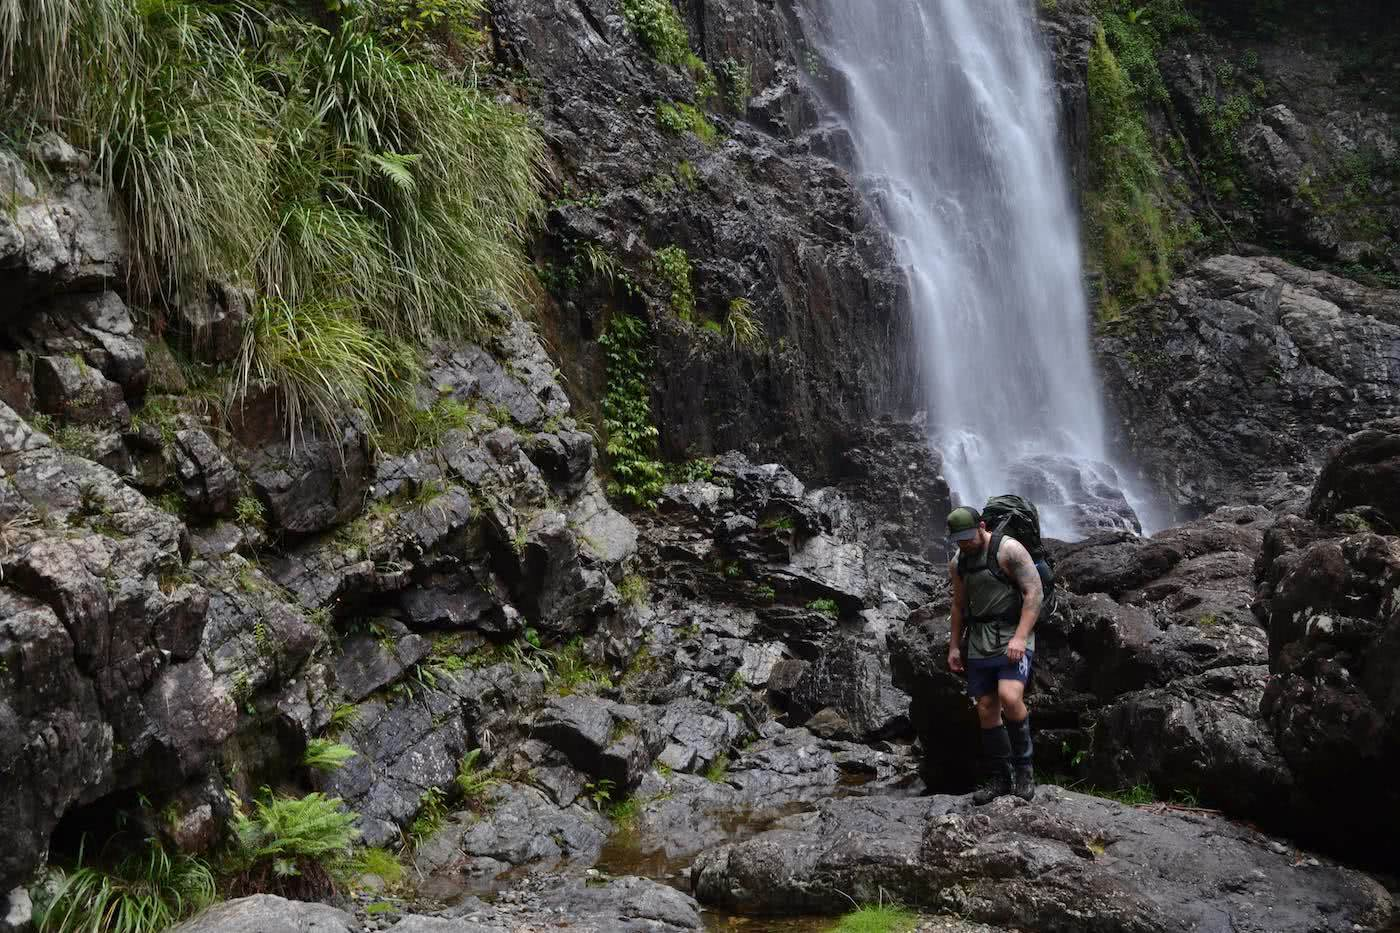 Dan Parkes, bushies untamed, osprey aether 60ag, gear review, main range national park, new england highlands, backpack, queensland, waterfall